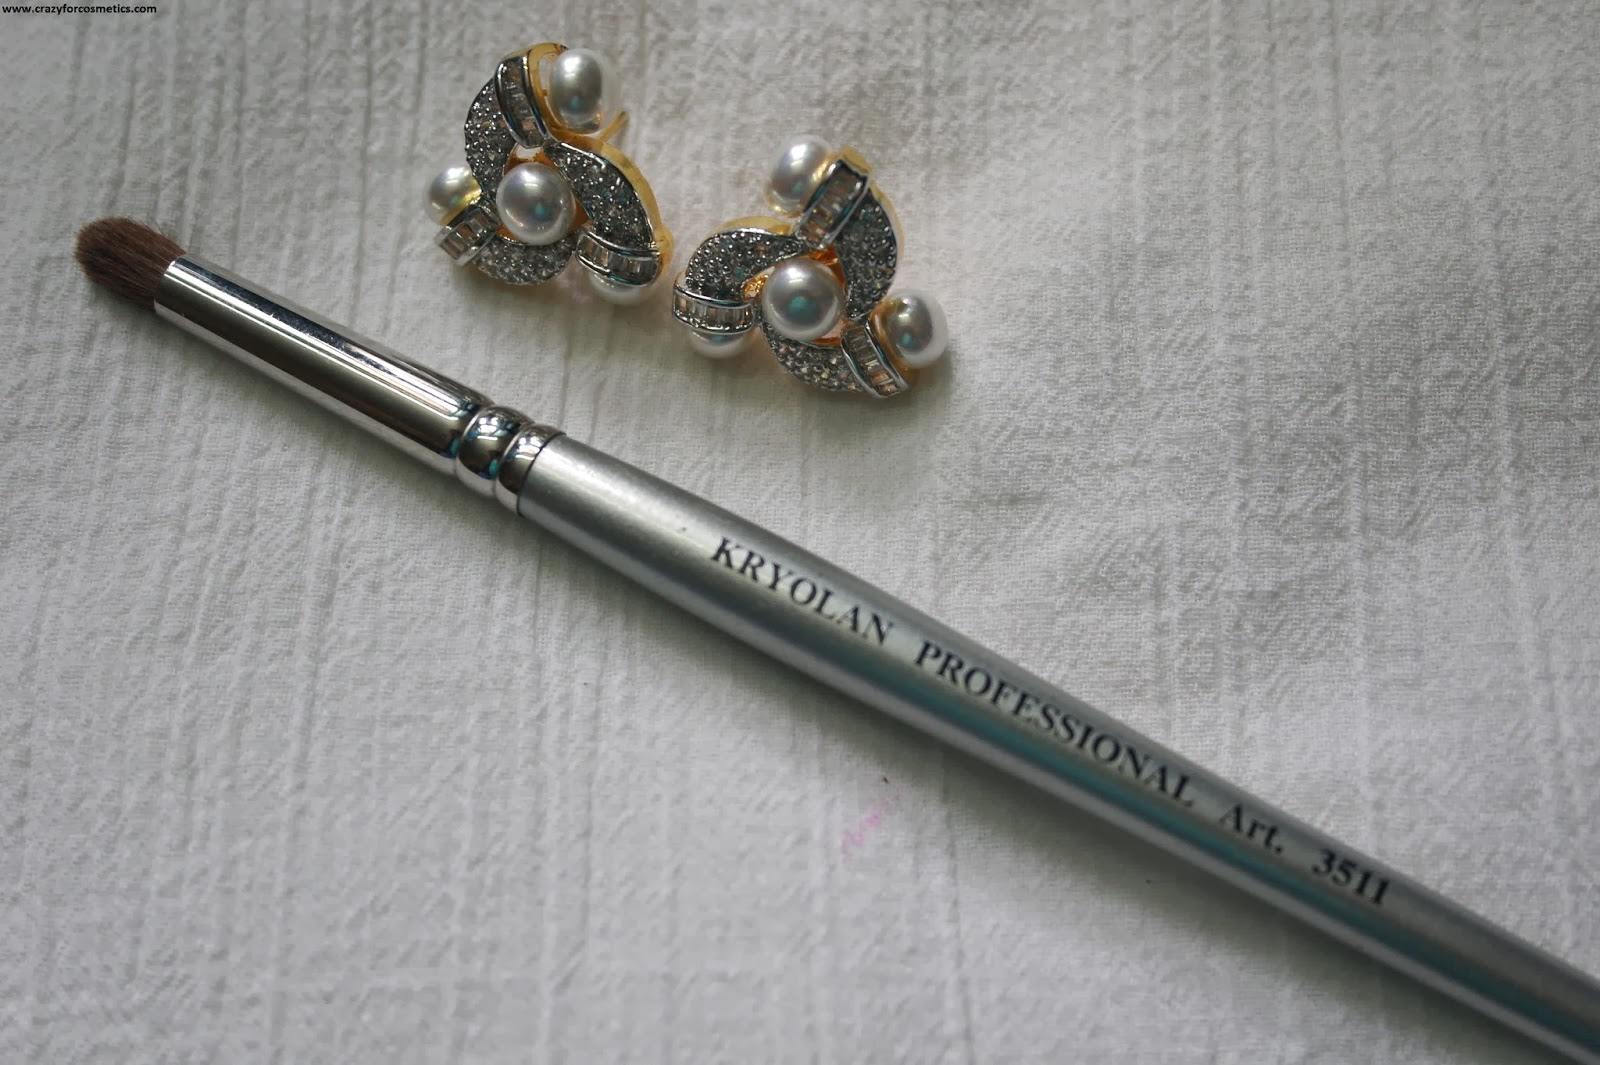 kryolan professional art brushes, kryolan makeup, kryolan chennai, kryolan brush review